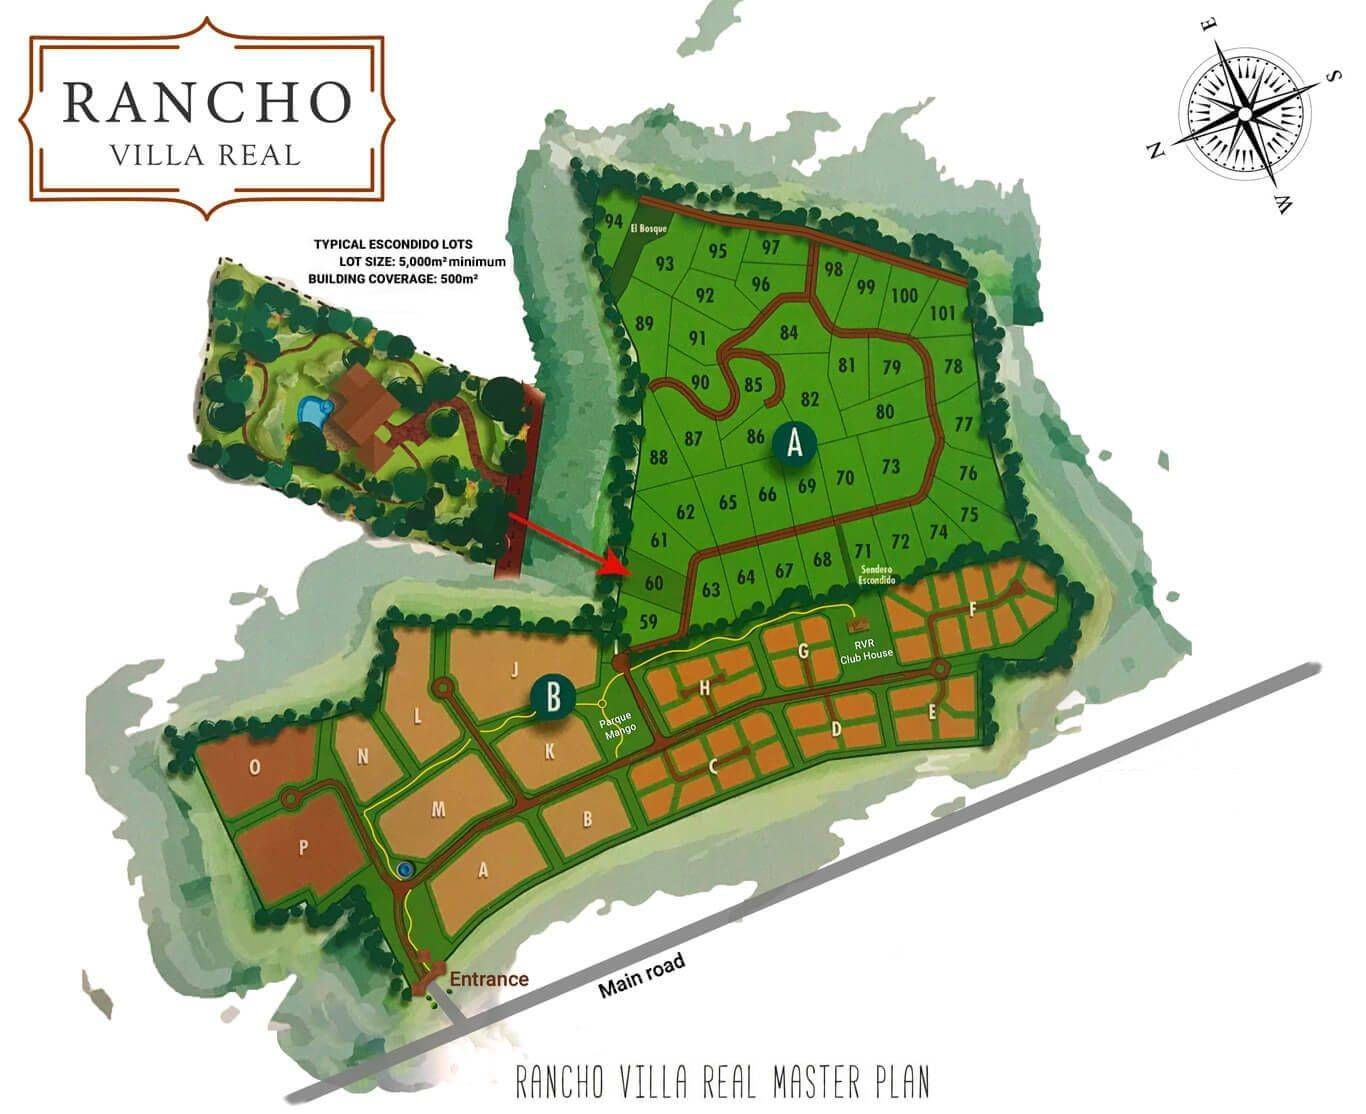 RANCHO VILLA REAL-PRIVATE COUNTRY LIVING WITH OCEAN ACCESS MINUTES AWAY